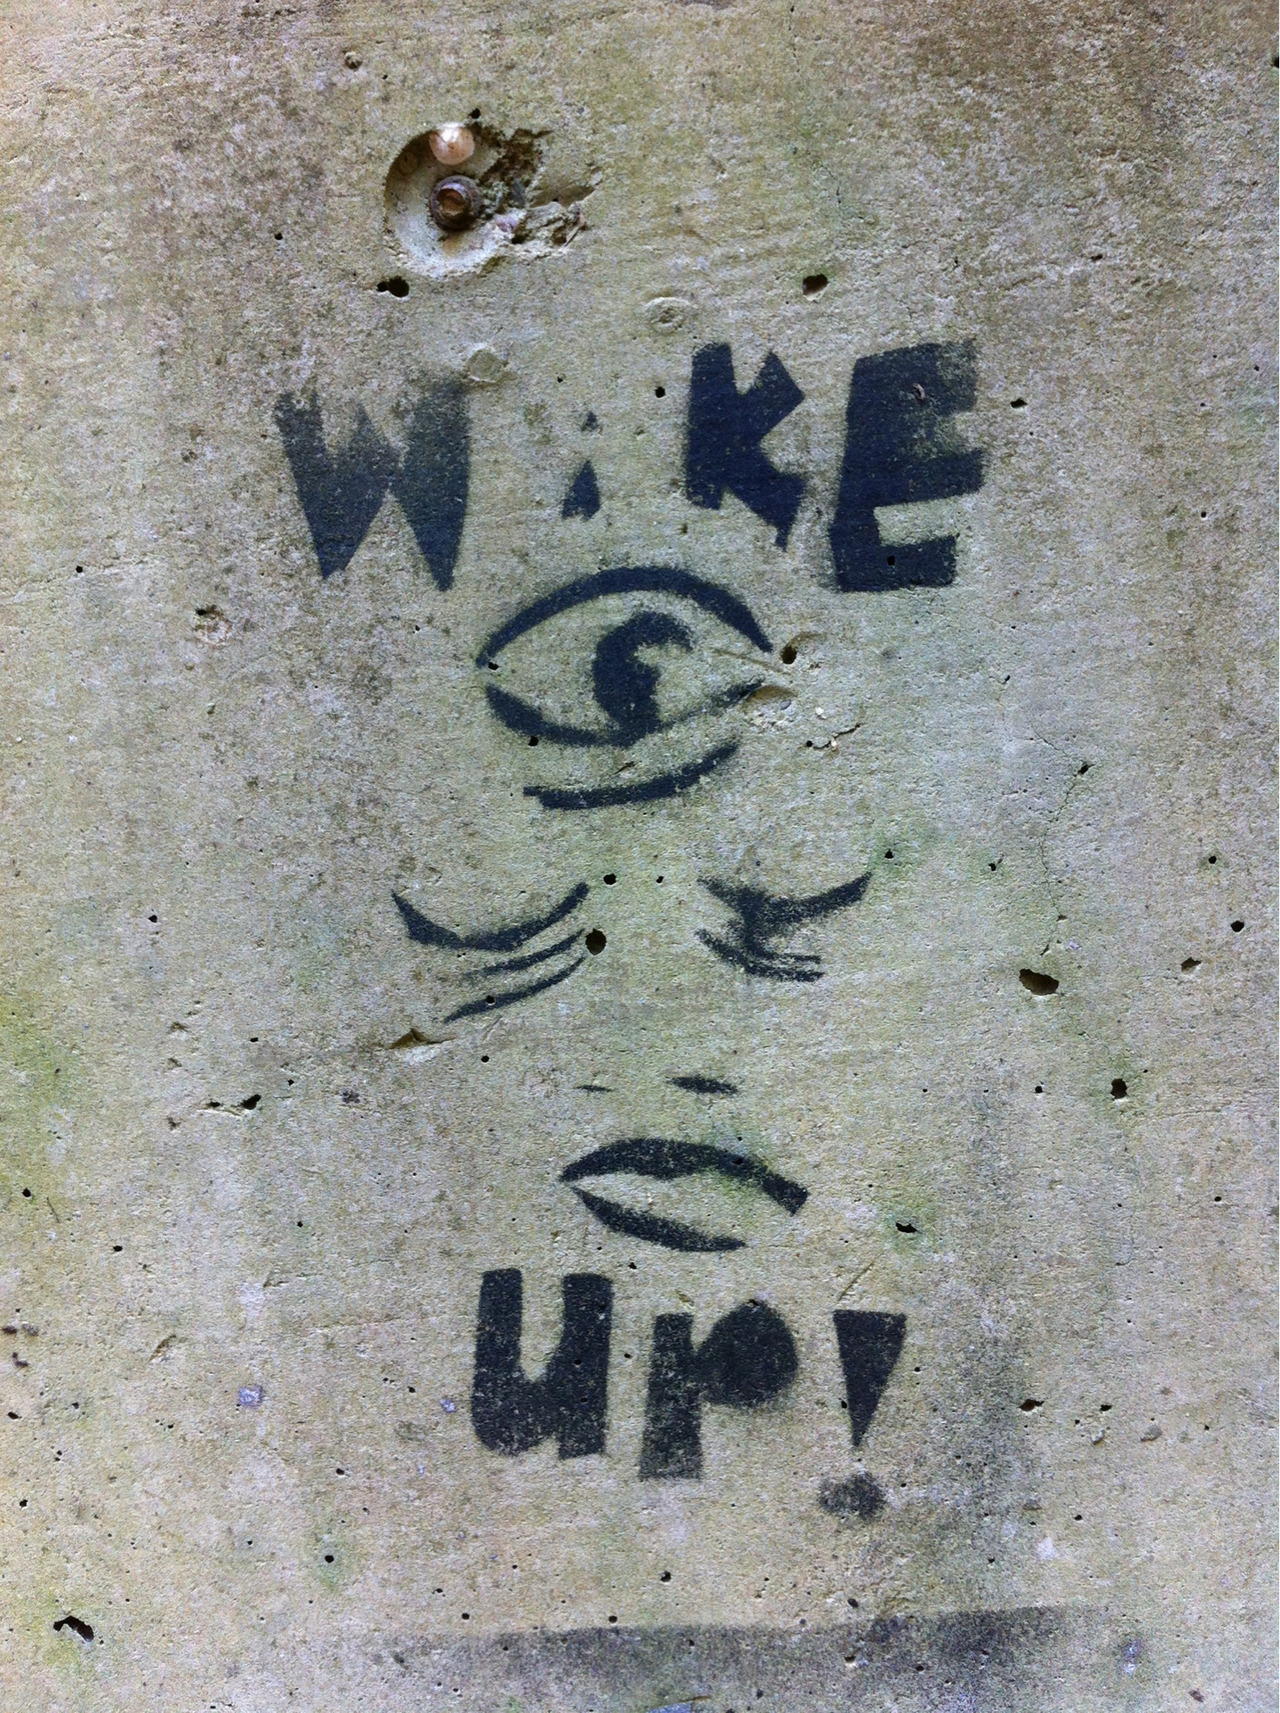 Wake up your 3rd eye!  More street art at: Euro Street Vision - my new project.